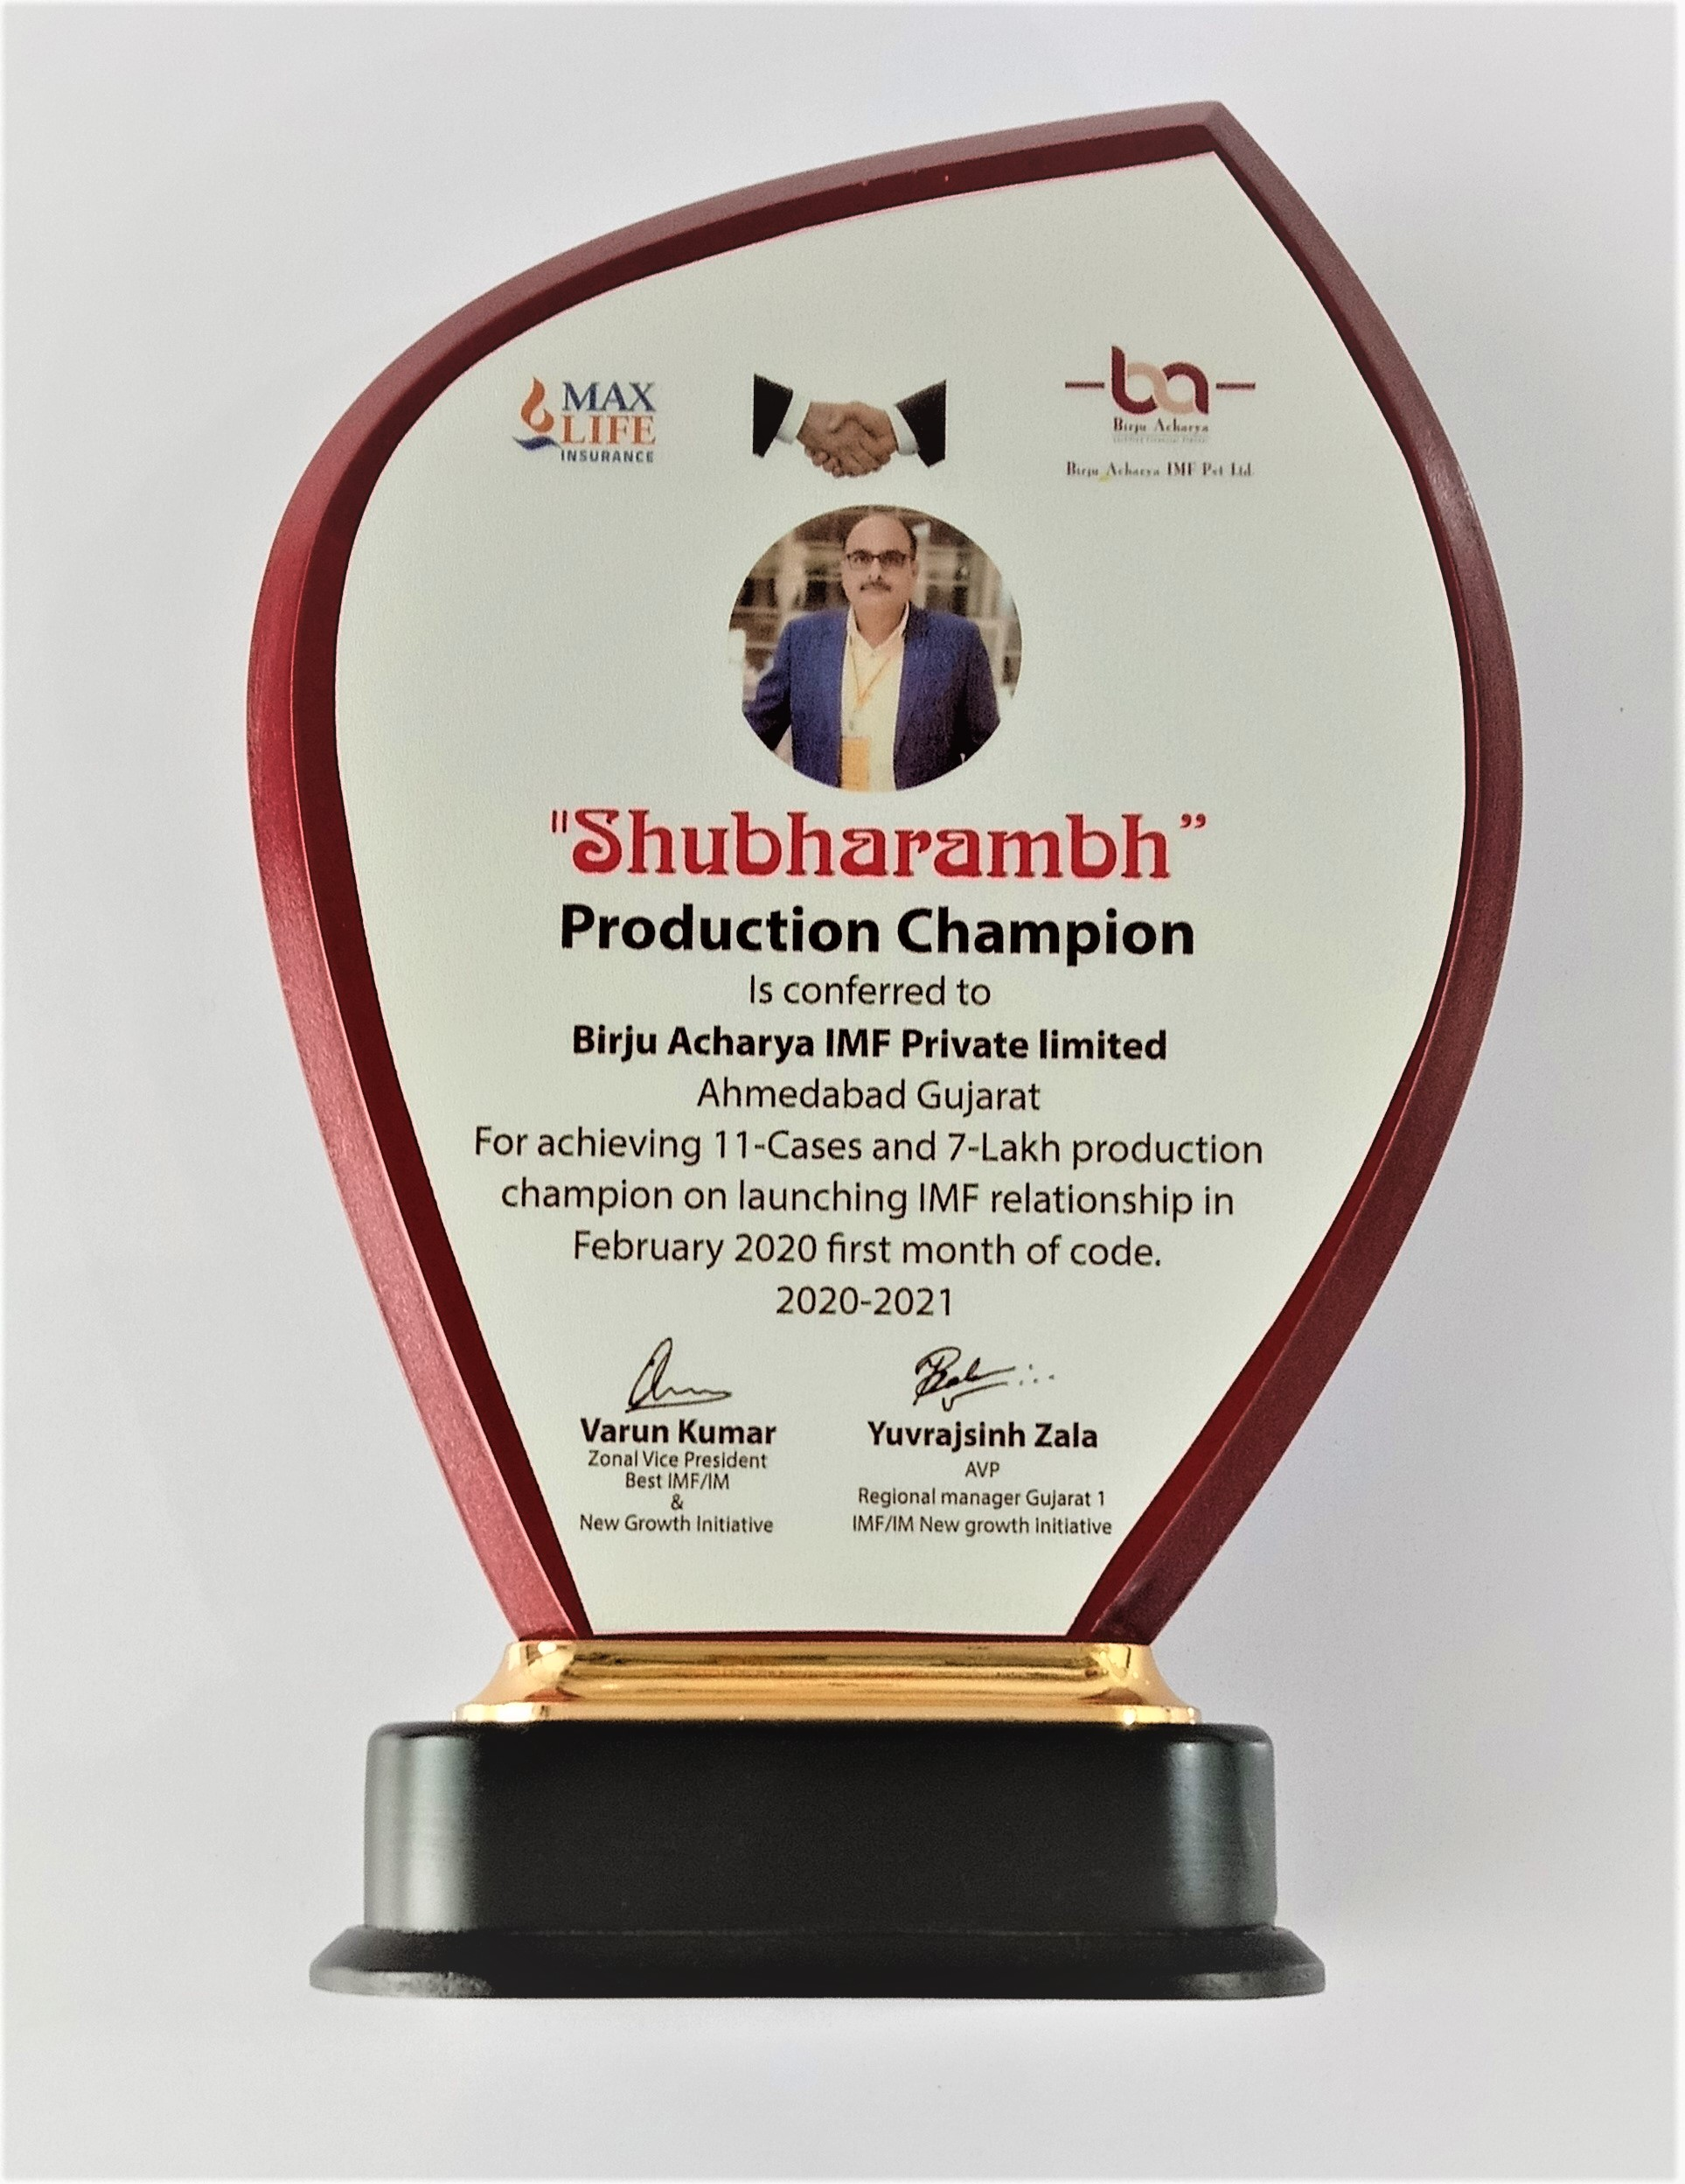 Shubharambh Production Champion